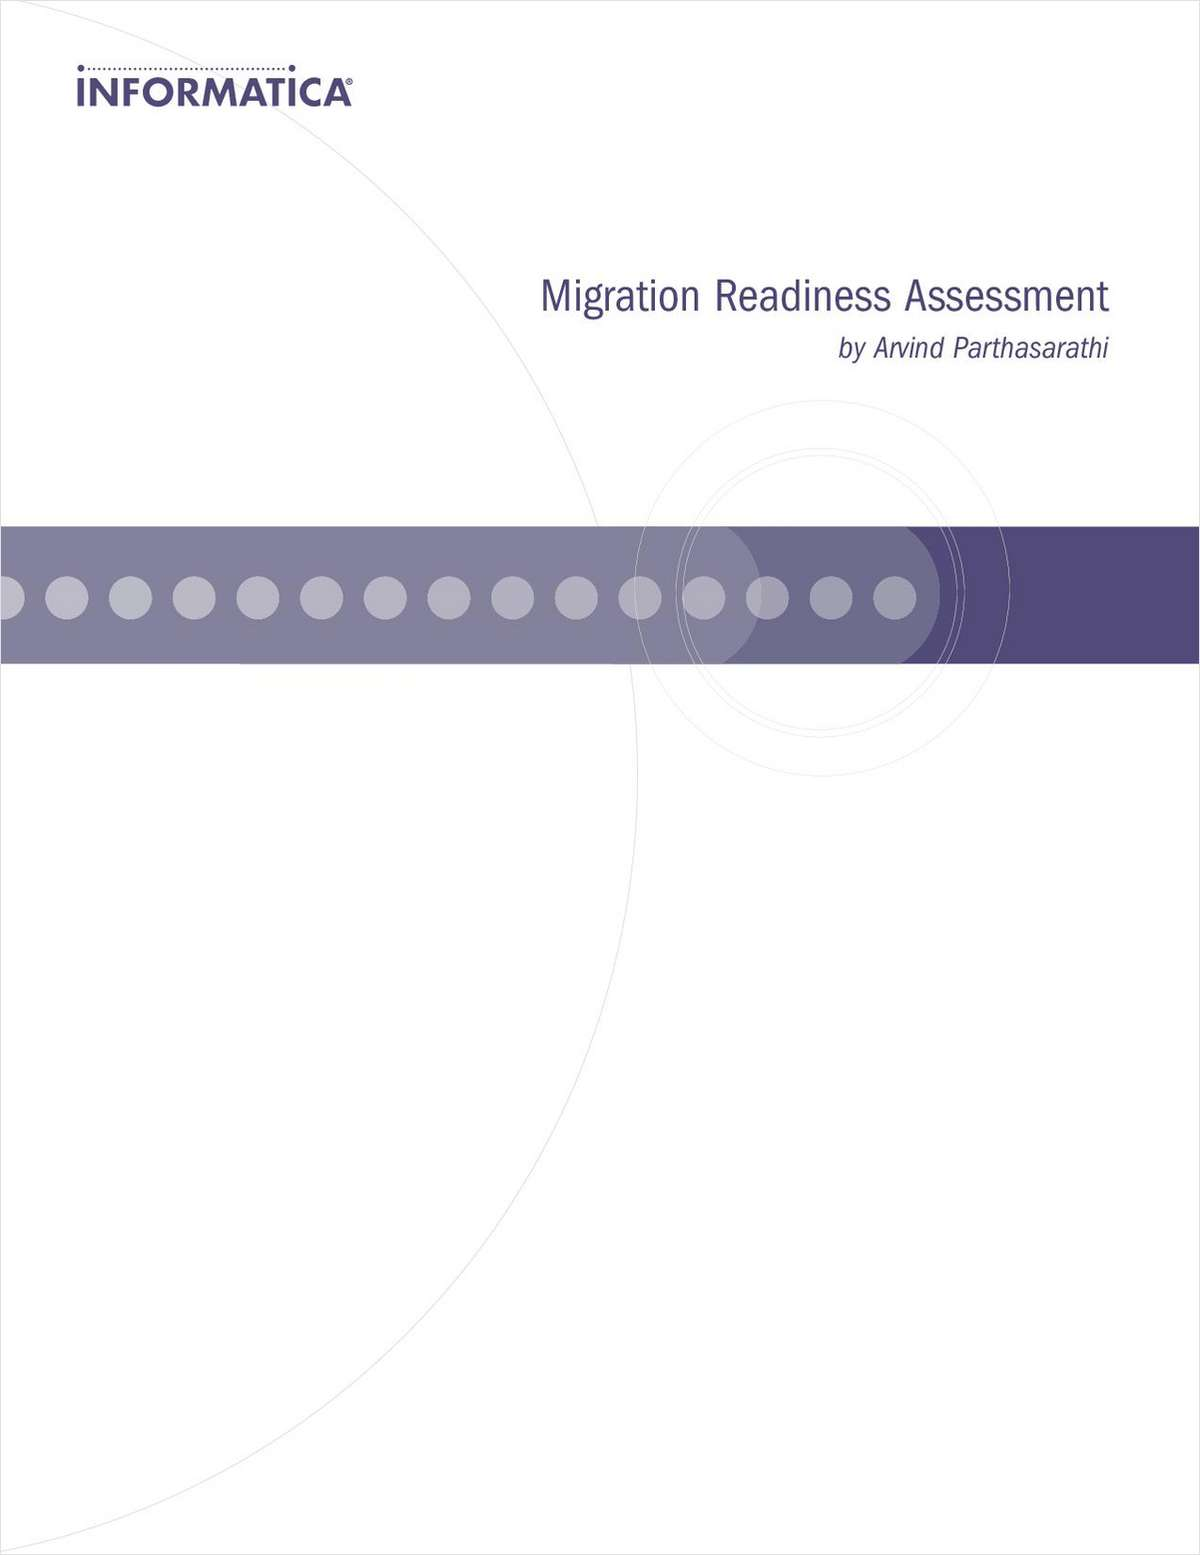 Migration Readiness Assessment